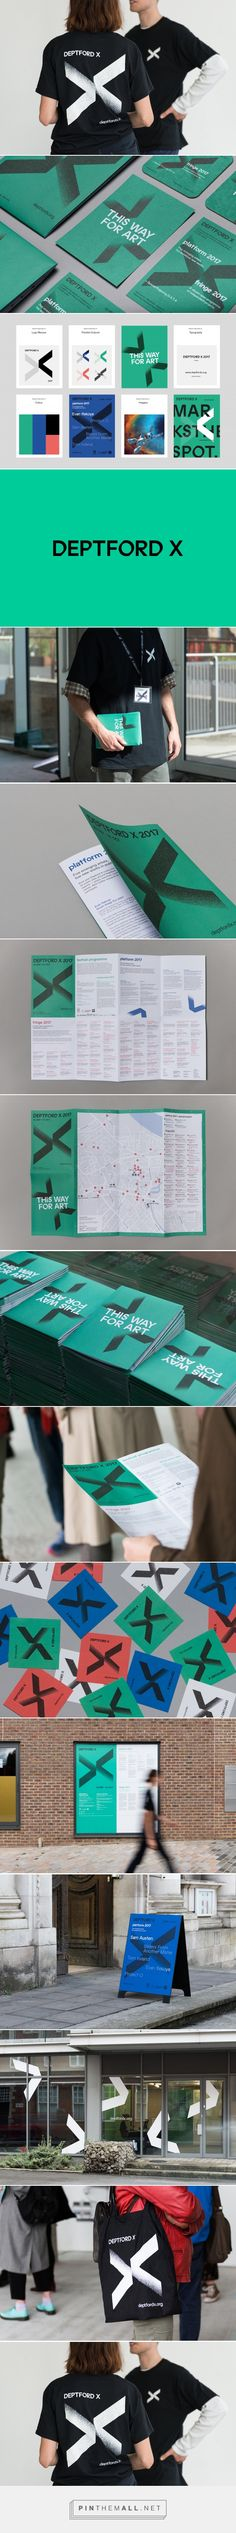 New Logo & Branding for Deptford X by IYA Studio — BP&O... - a grouped images picture - Pin Them All